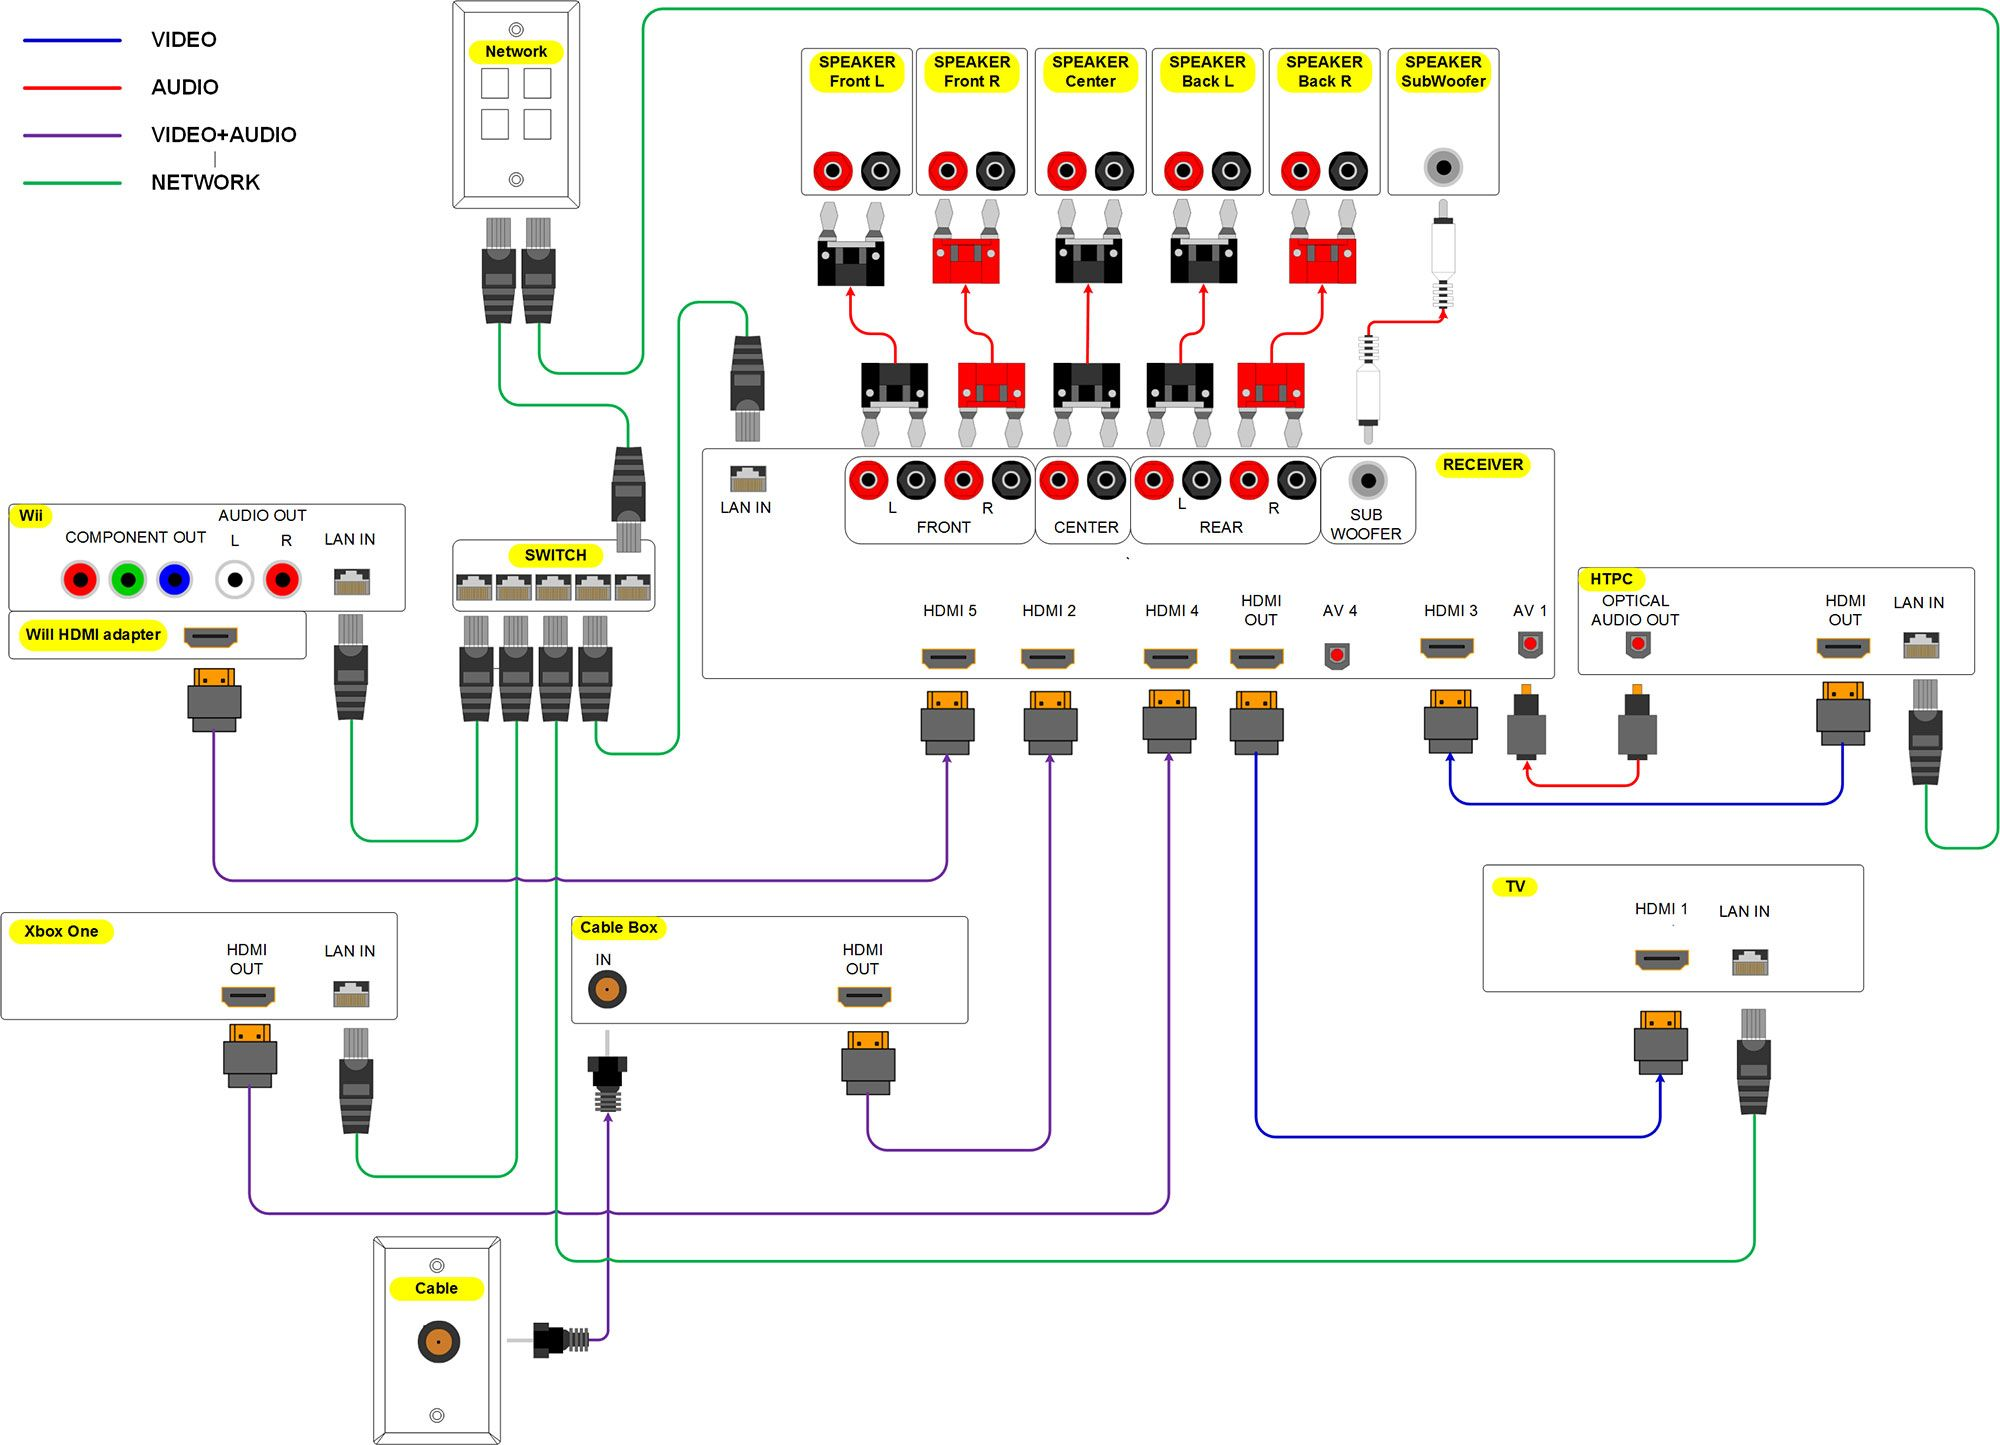 Home Theater Wiring Diagram click it to see the big 2000 pixel – Lan Wiring Diagram